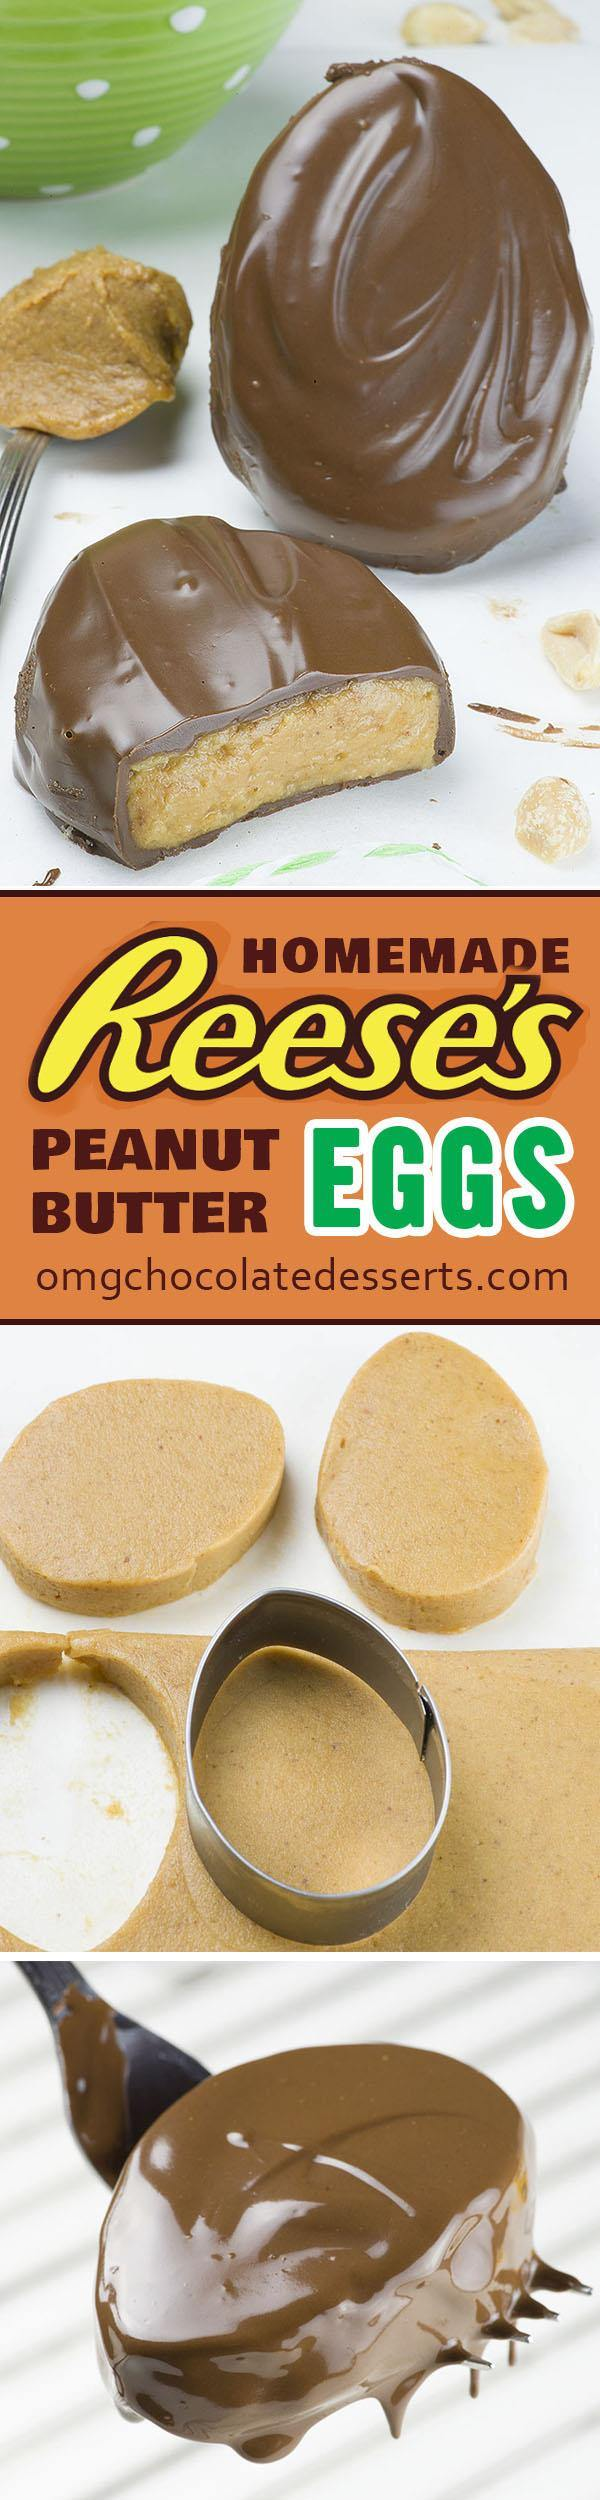 Homemade reese s eggs omg chocolate desserts for Easy sweet treats with peanut butter